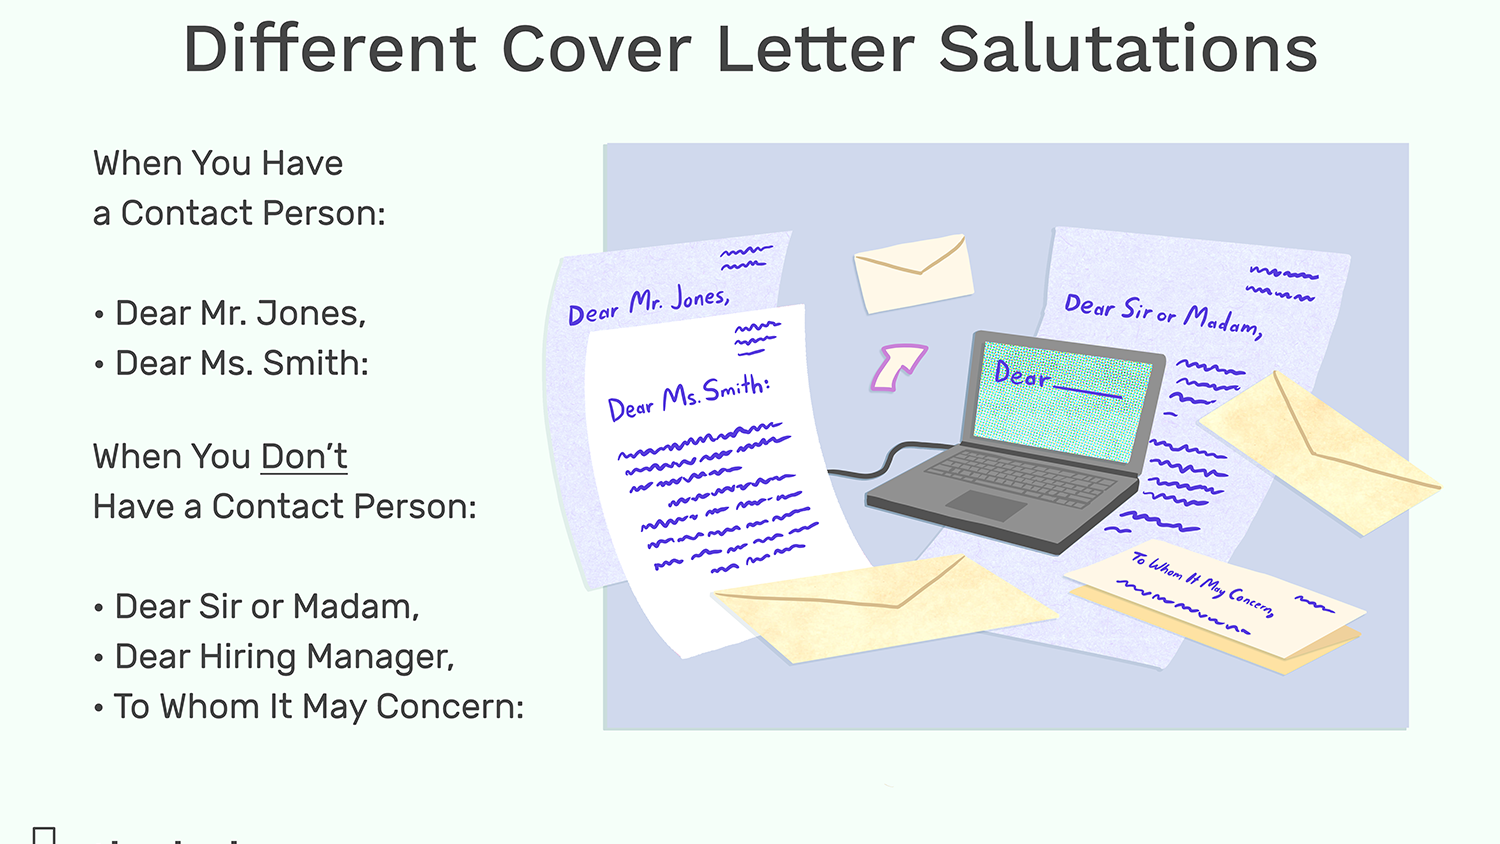 Should You Include A Cover Letter If It Is Not Asked For from www.thebalancecareers.com